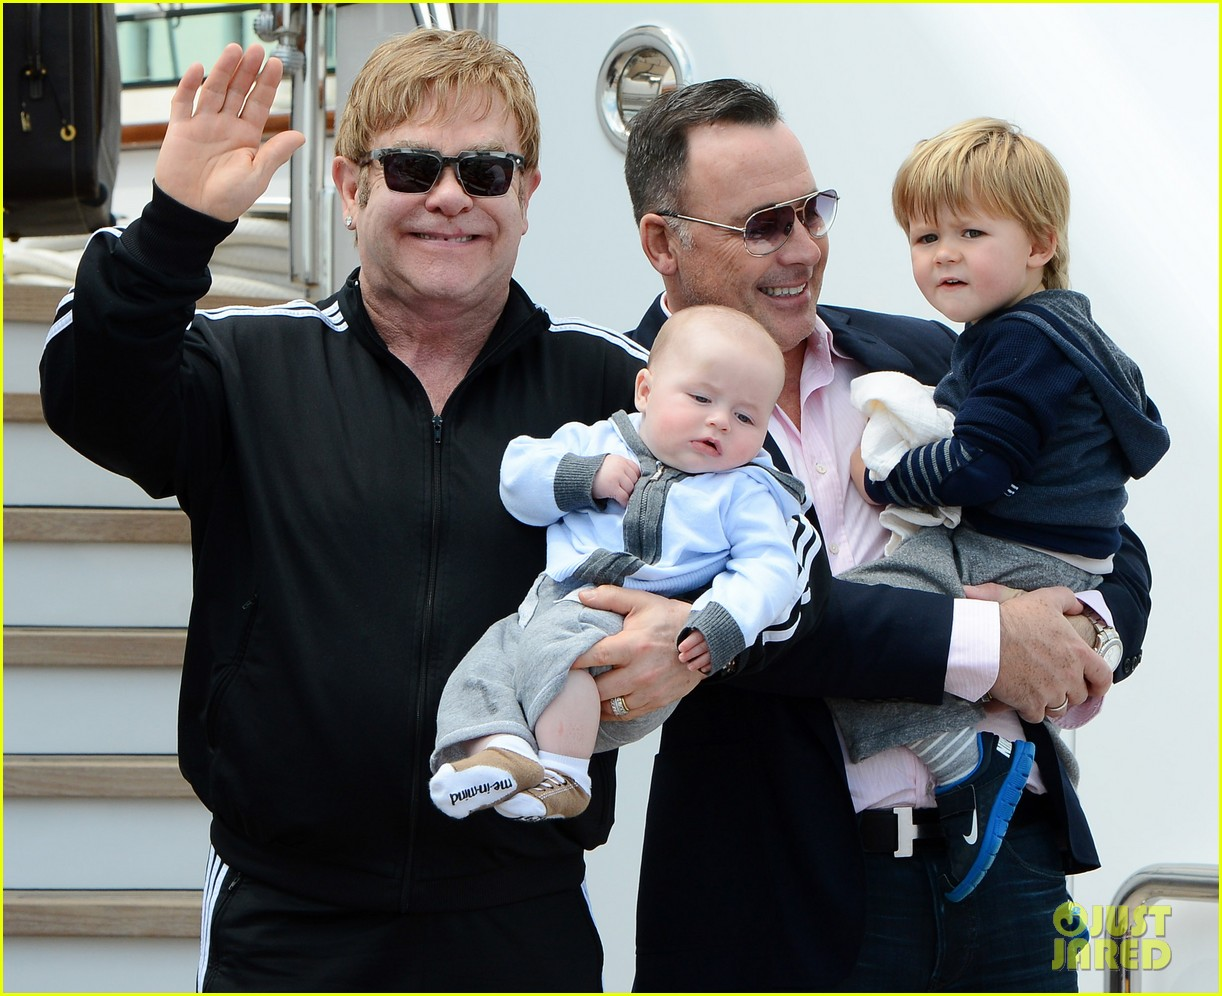 Family photo of the musician, married to David Furnish,  famous for Bennie & The Jets.